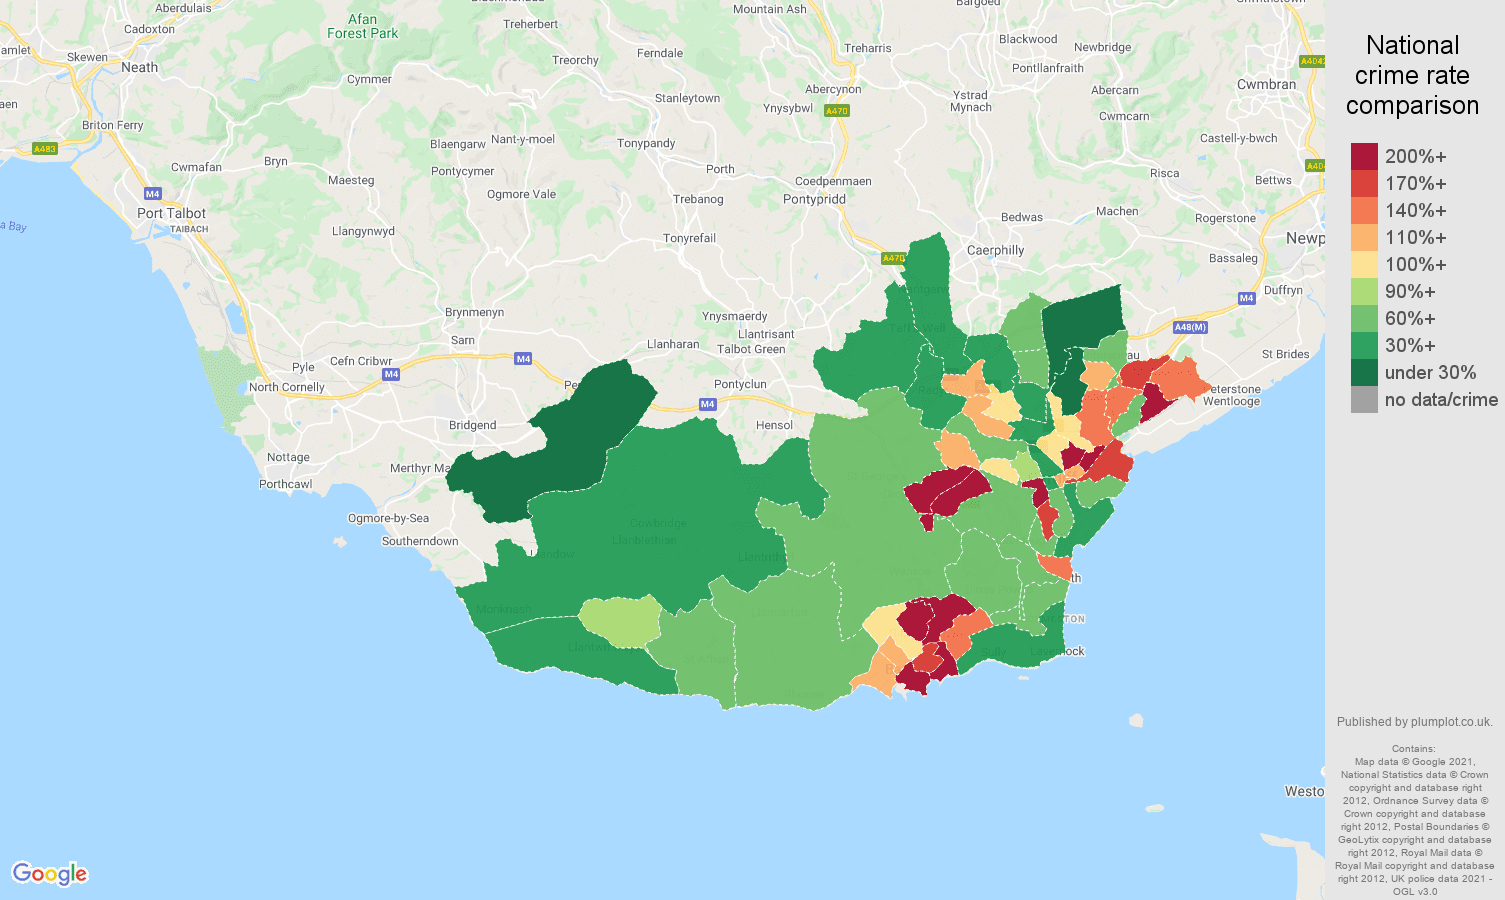 South Glamorgan criminal damage and arson crime rate comparison map